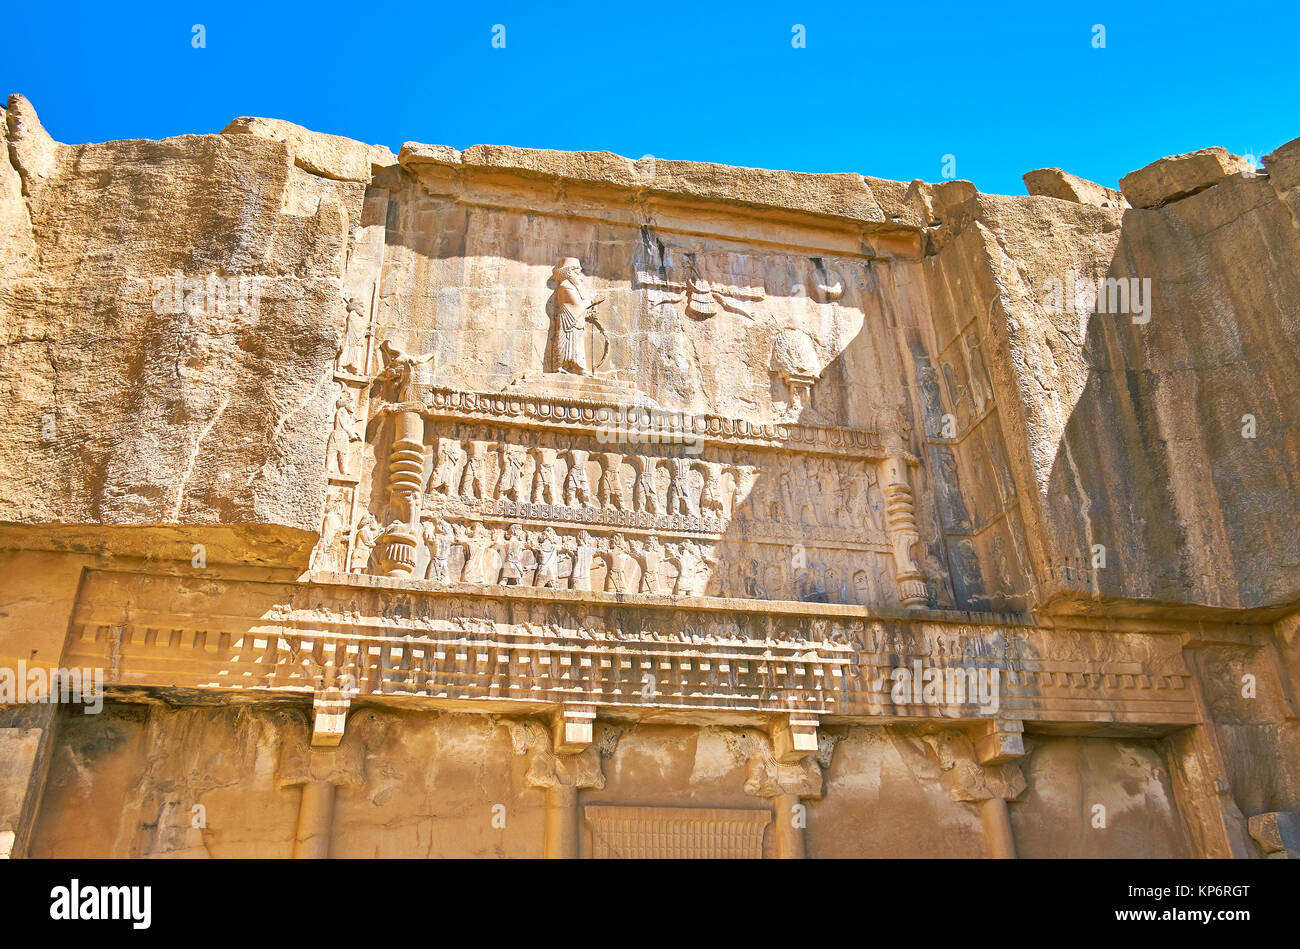 The ancient carvings on the facade of cut in rock Tomb of Artaxerxes III, Persepolis, Iran. - Stock Image